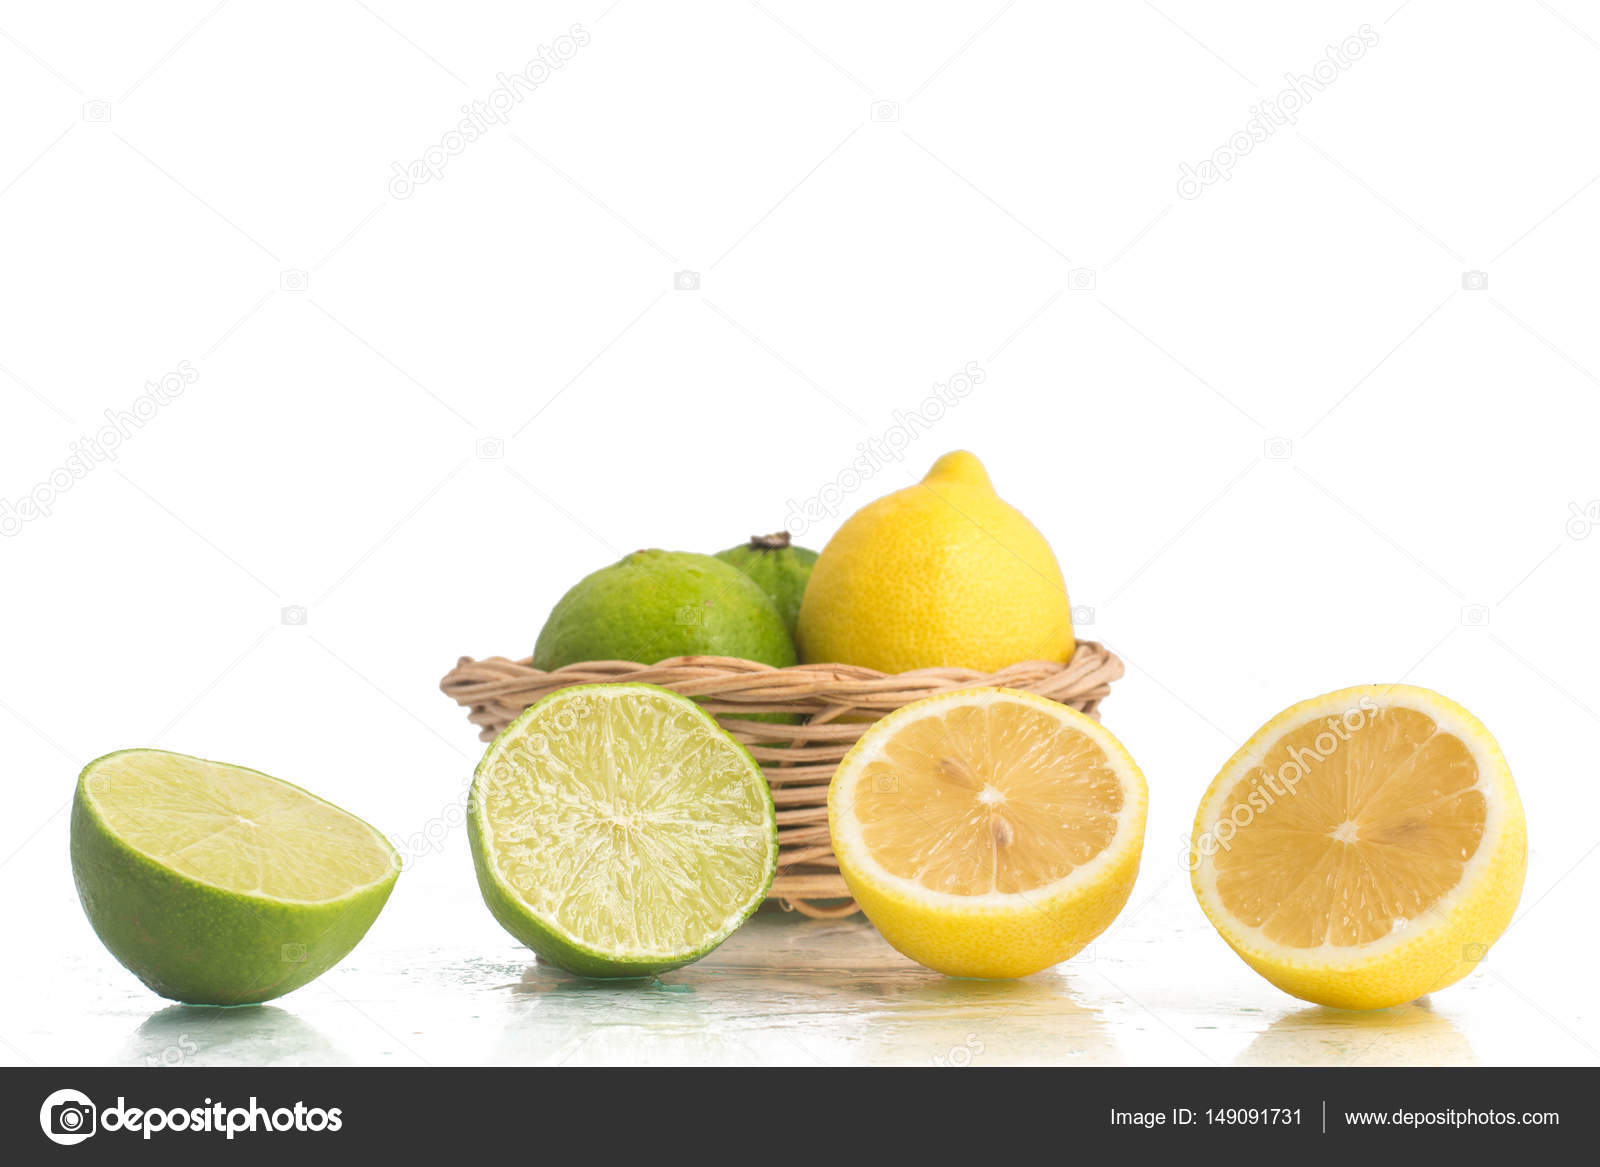 Lime eller citron